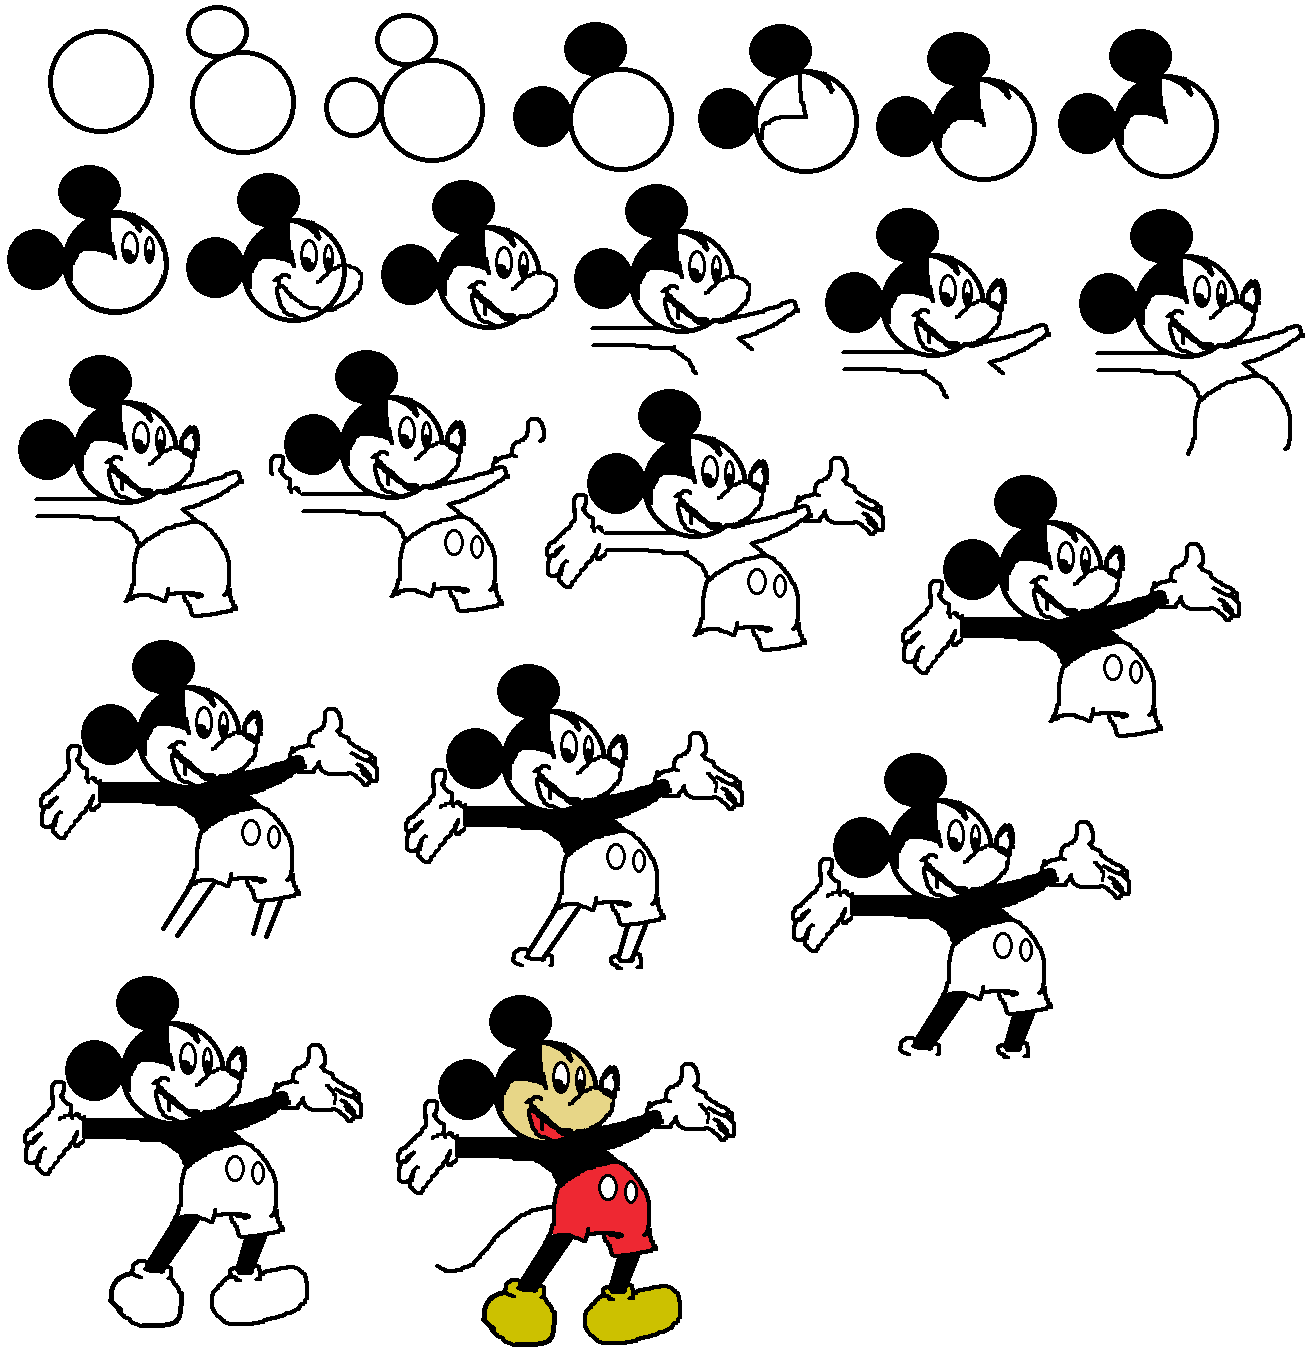 easy disney characters to draw step by step winnie the pooh step by step guide to drawing in 2020 disney to step by step draw characters easy